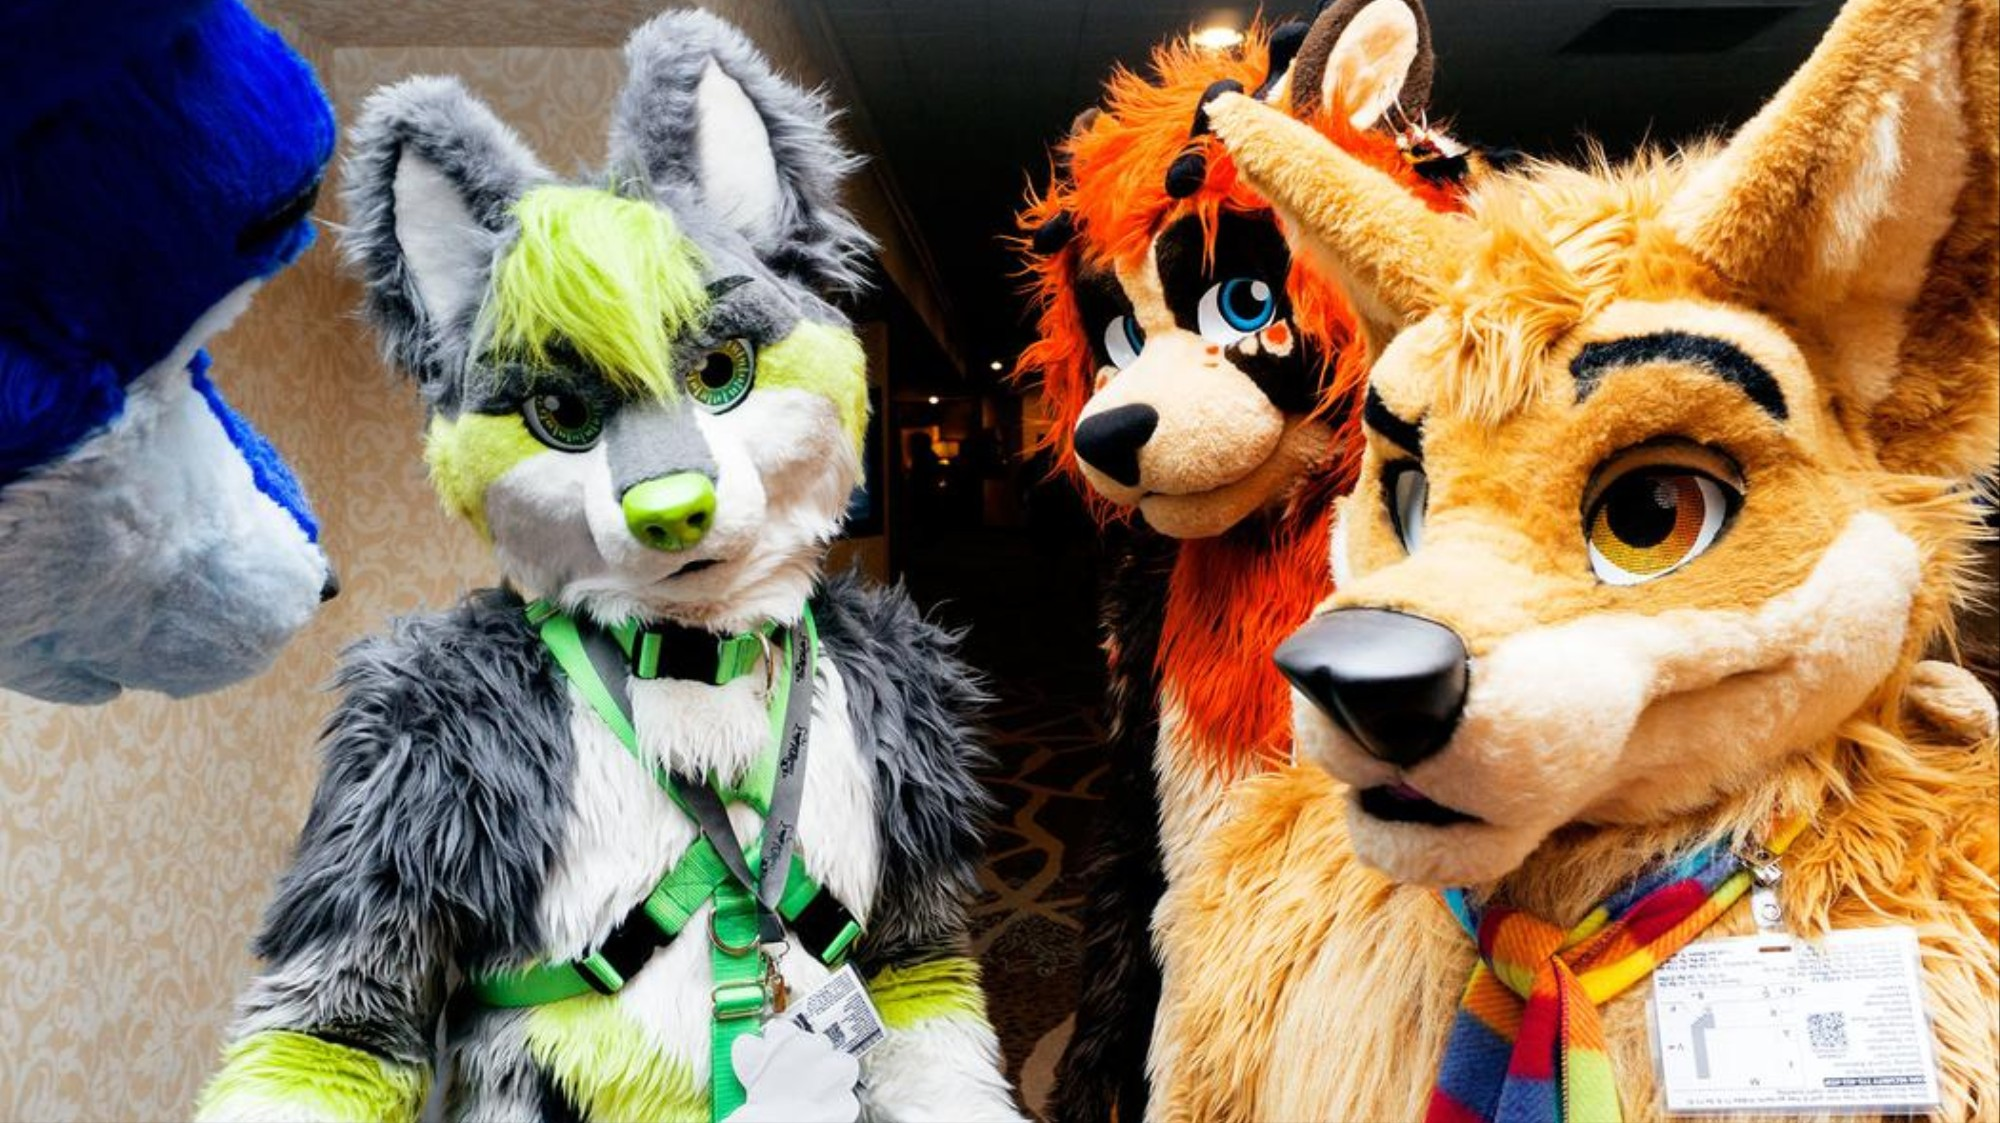 Who Makes Those Intricate, Expensive Furry Suits? - VICE